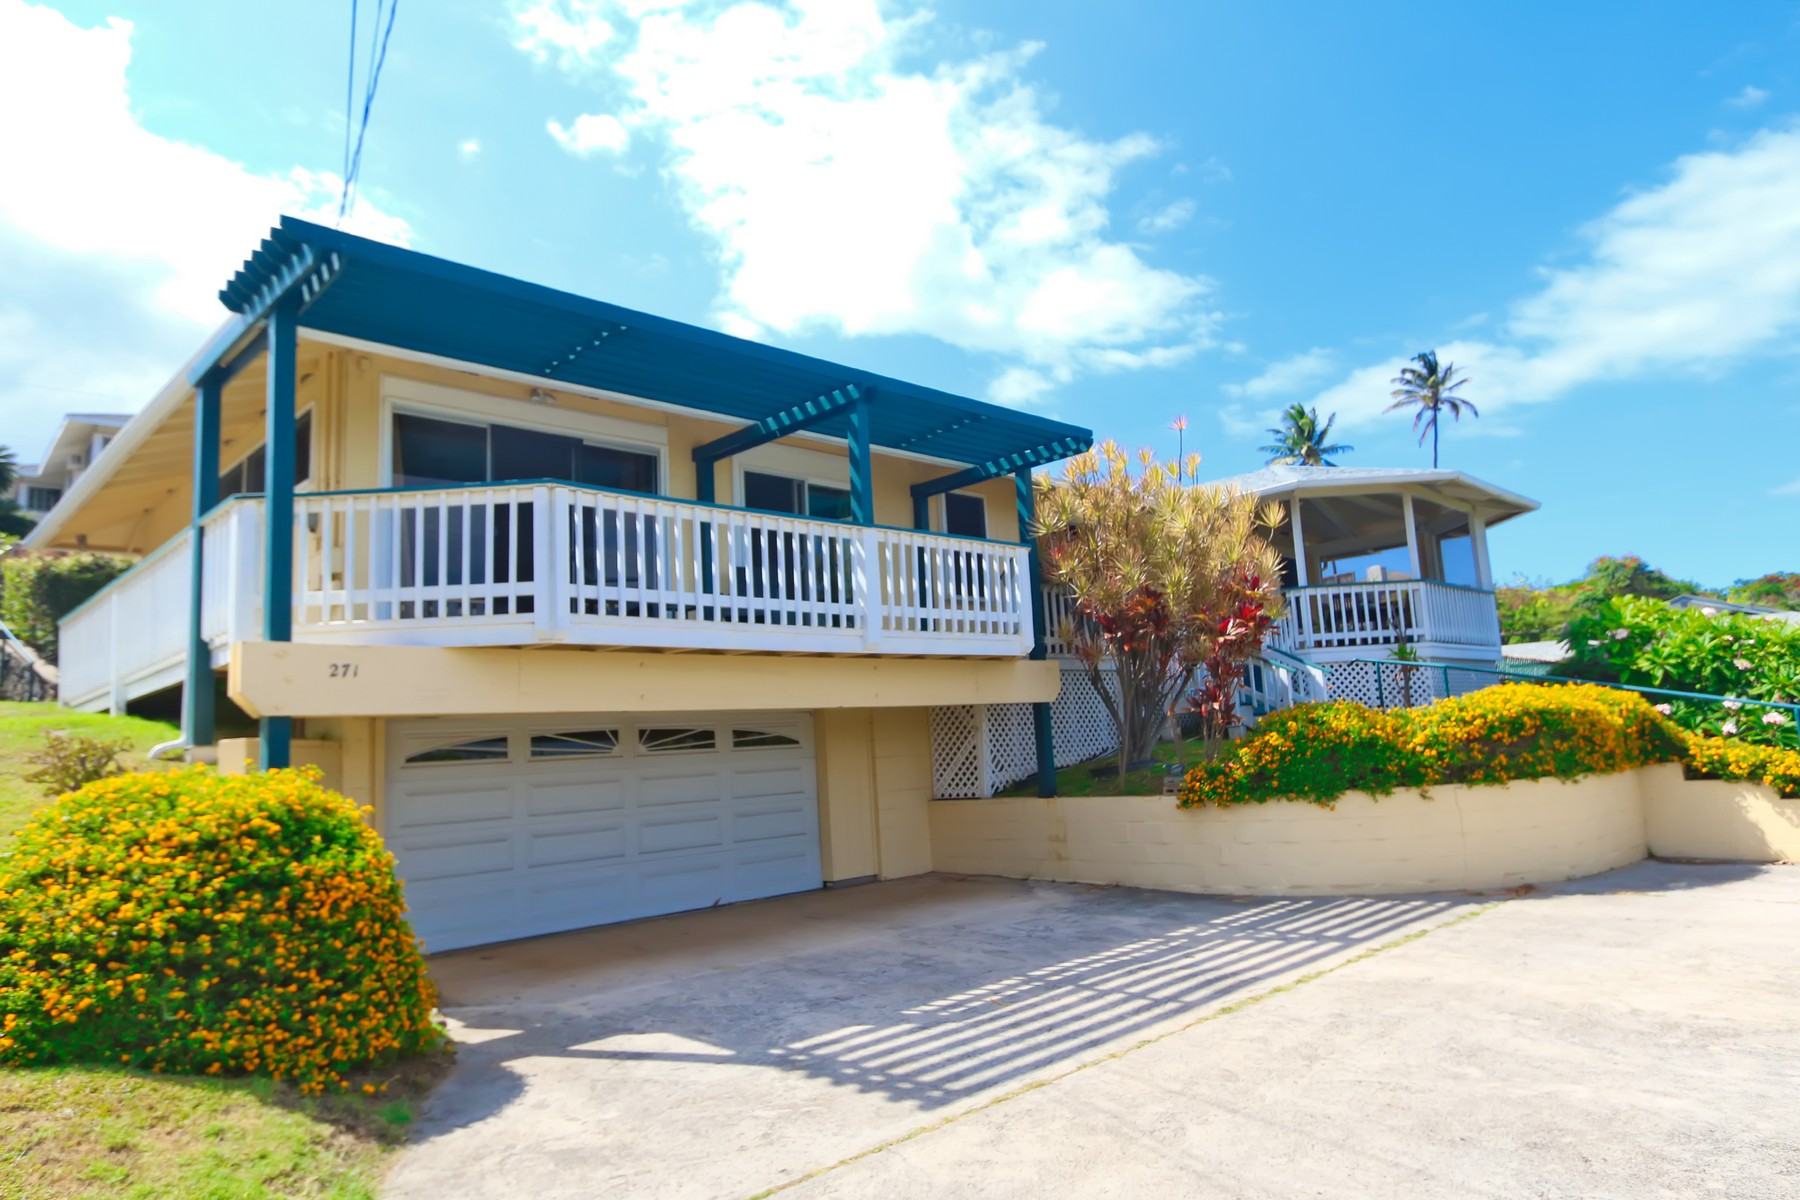 Single Family Home for Sale at Ocean View Updated Mid Century Wailuku Residence 271 Liholiho St Wailuku, Hawaii 96790 United States